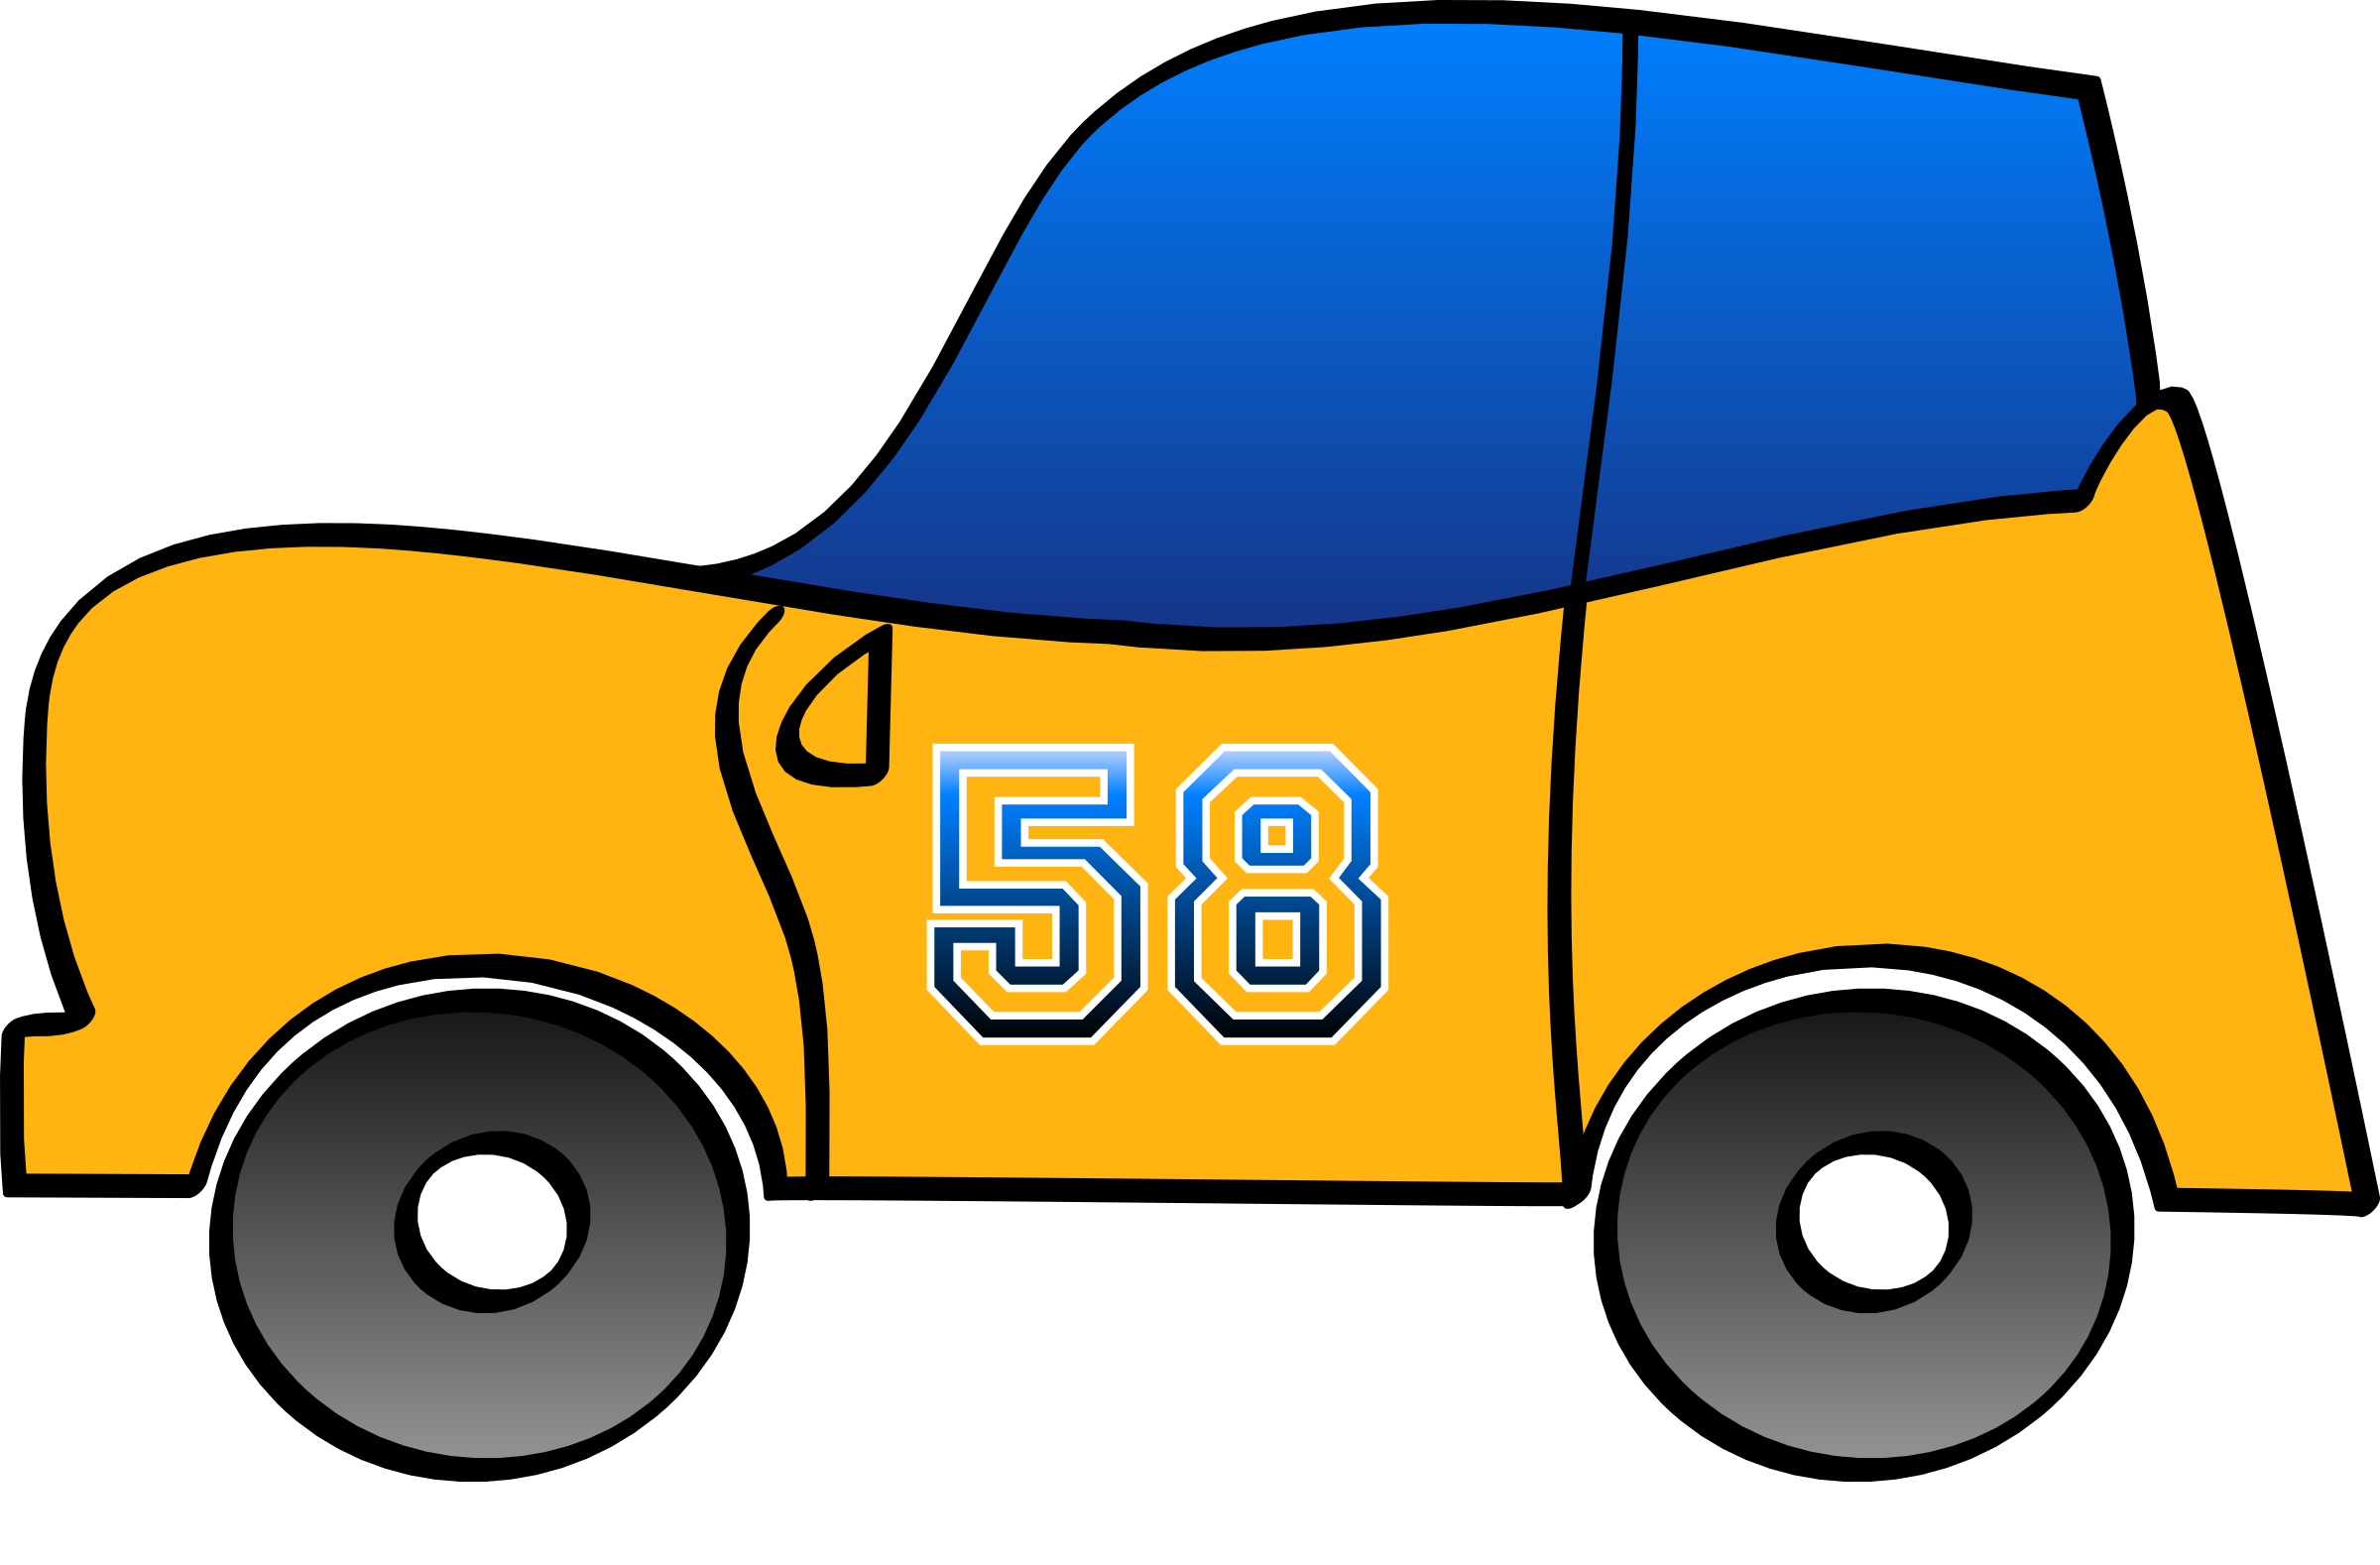 Clipart cars vector. Blue car funny d